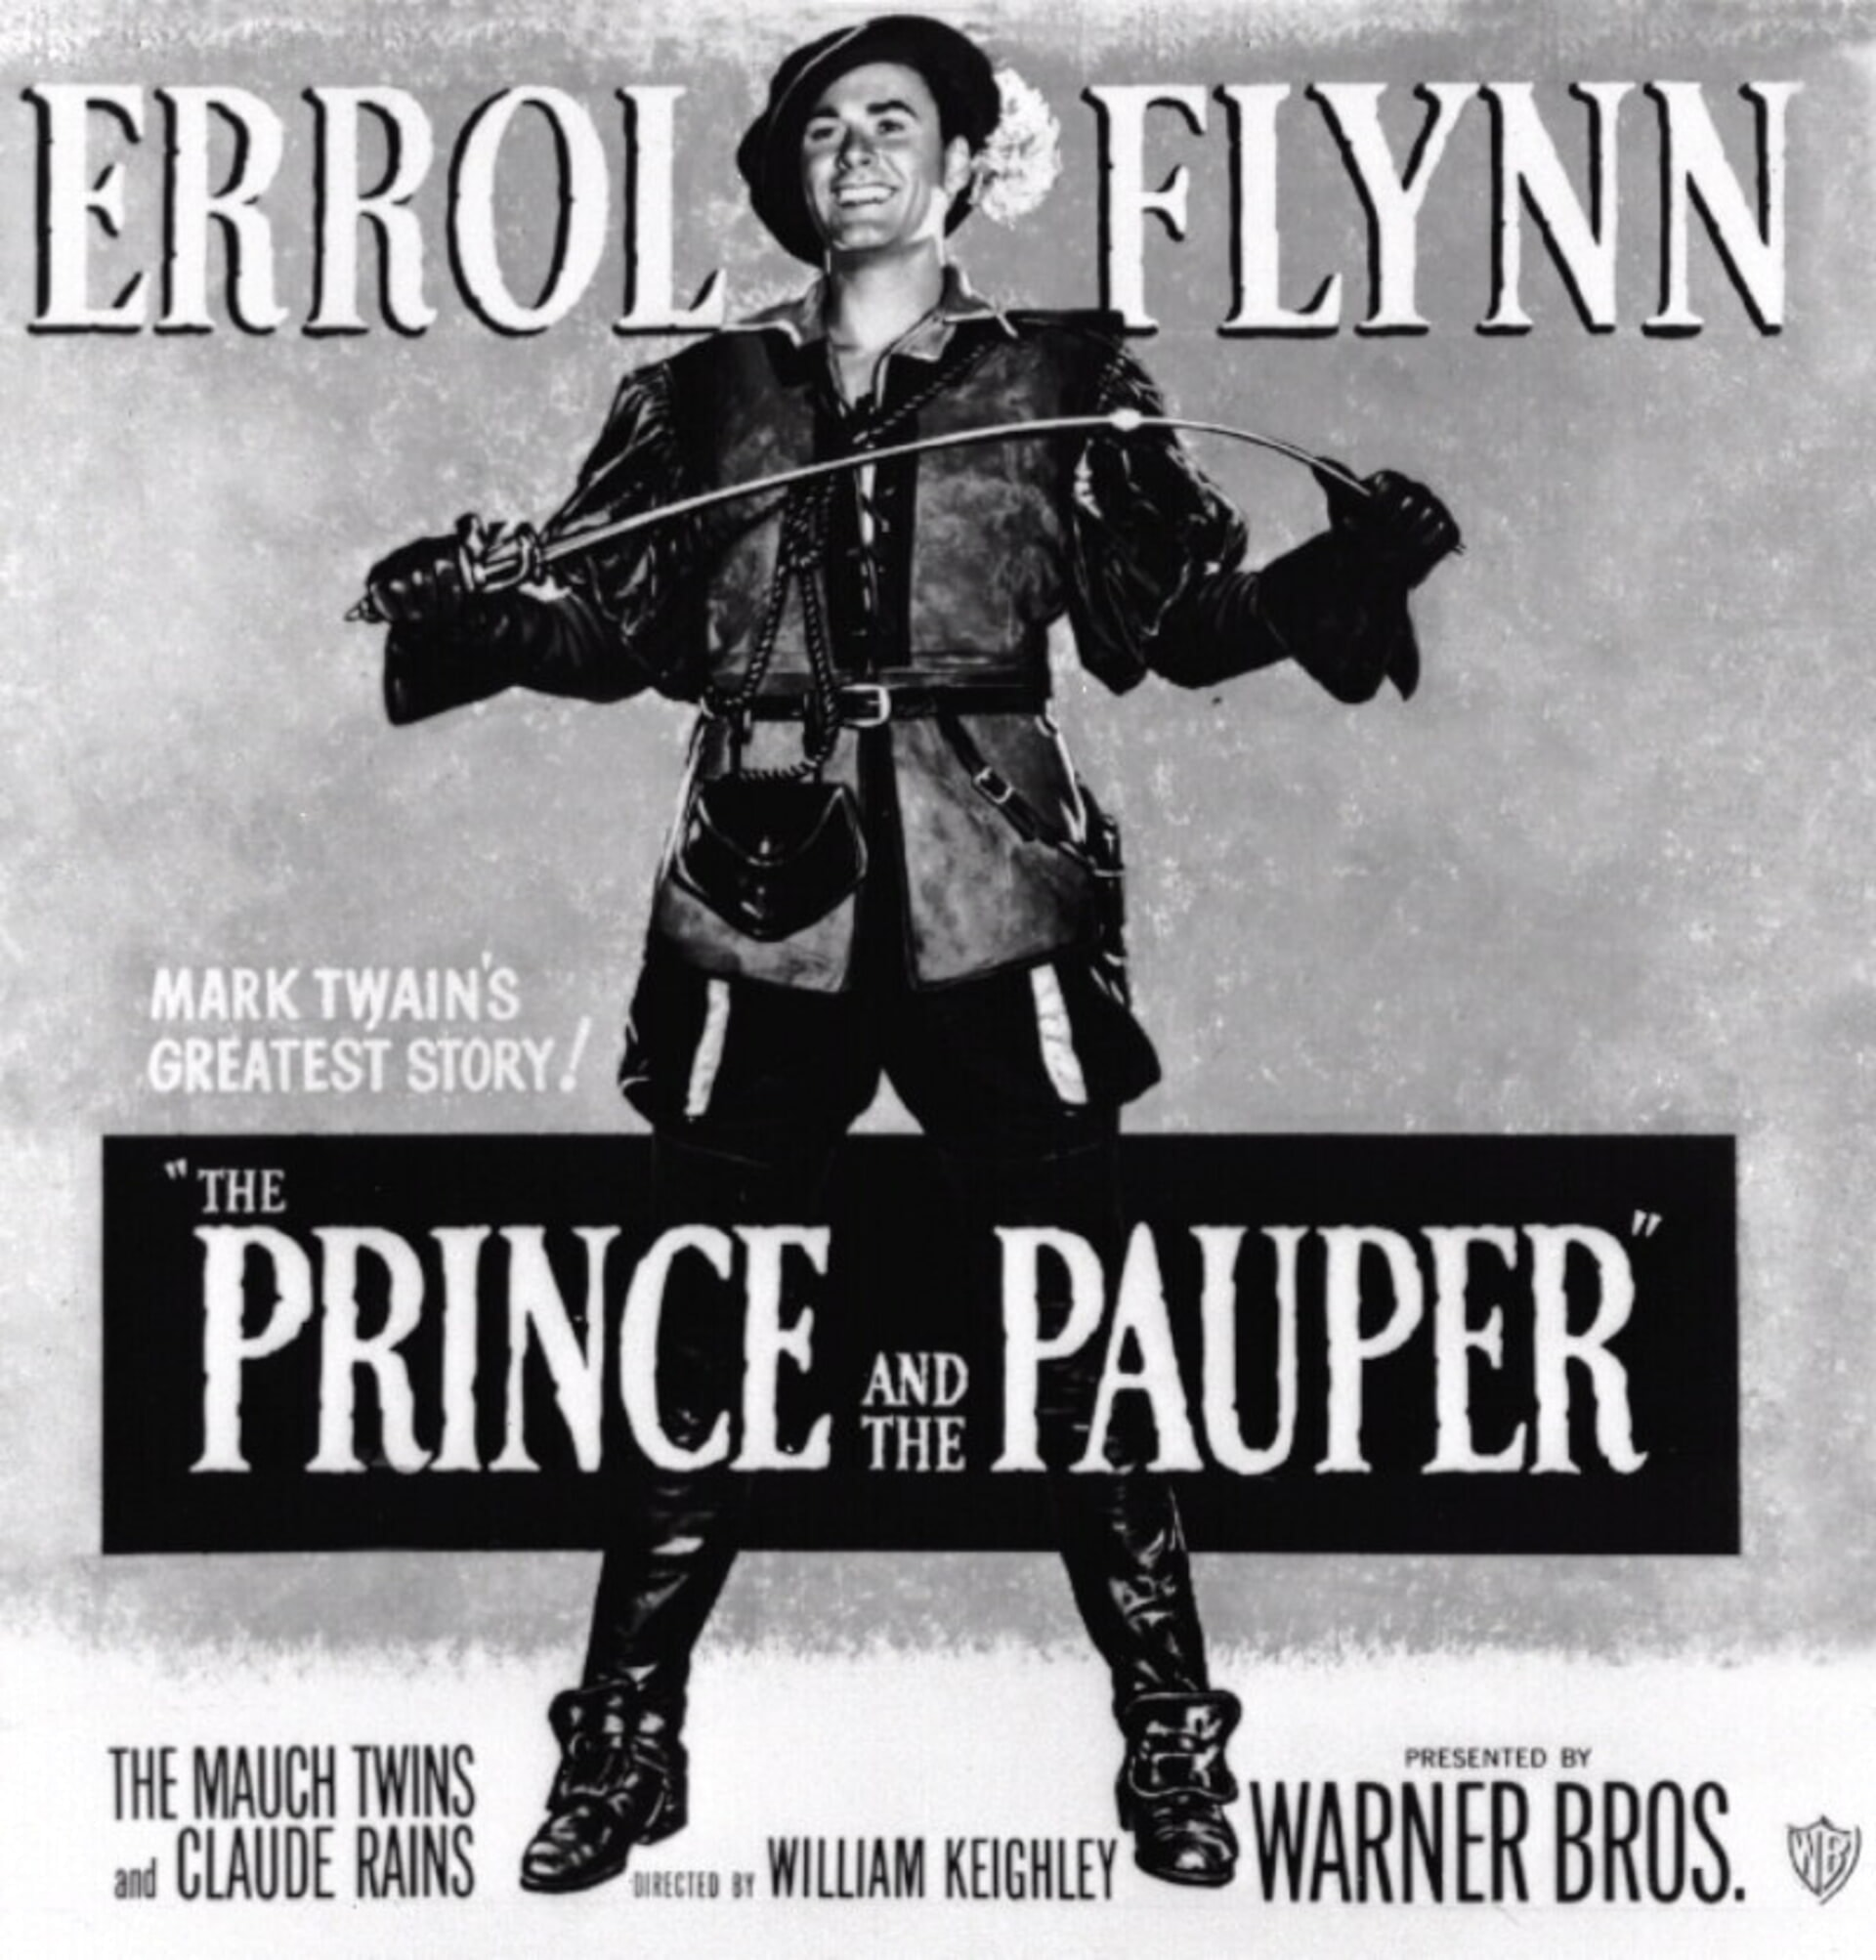 WarnerBros com | The Prince and the Pauper | Movies